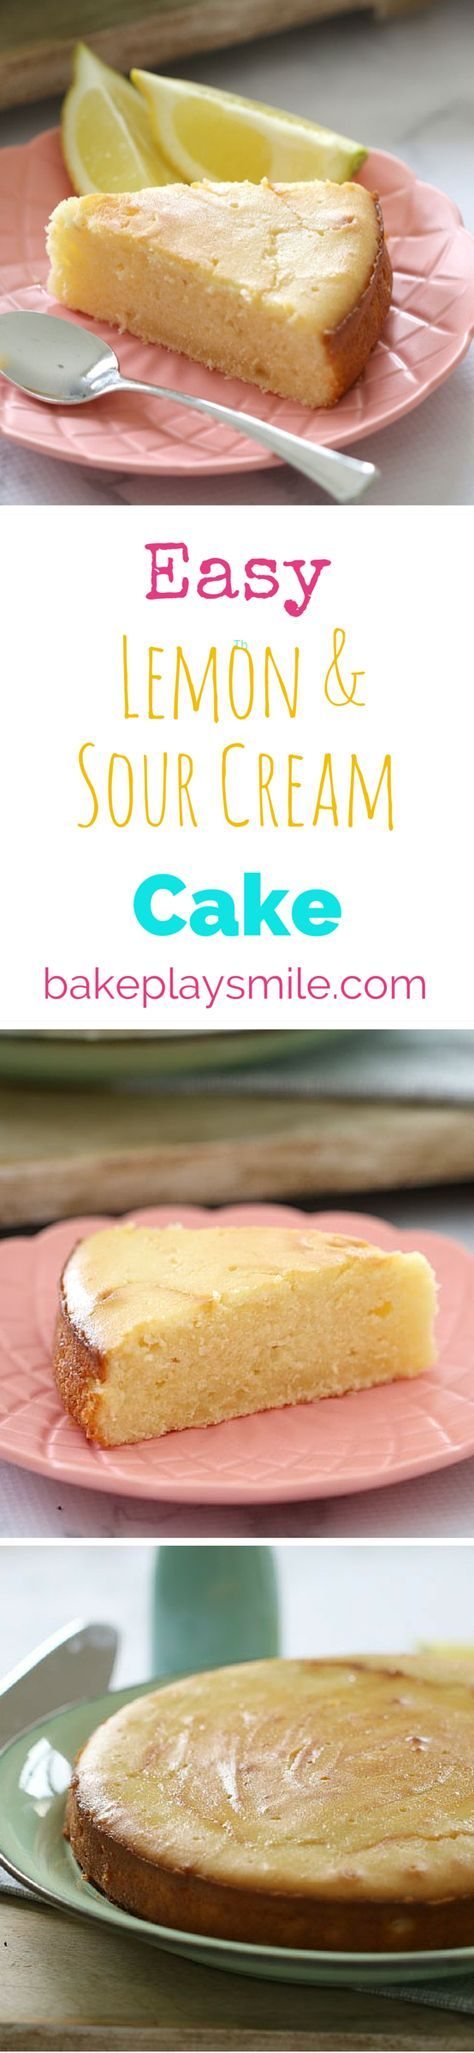 The BEST and EASIEST Lemon & Sour Cream Cake you'll ever make. Pus the lemon drizzle keeps it so deliciously moist. | Bake Play Smile